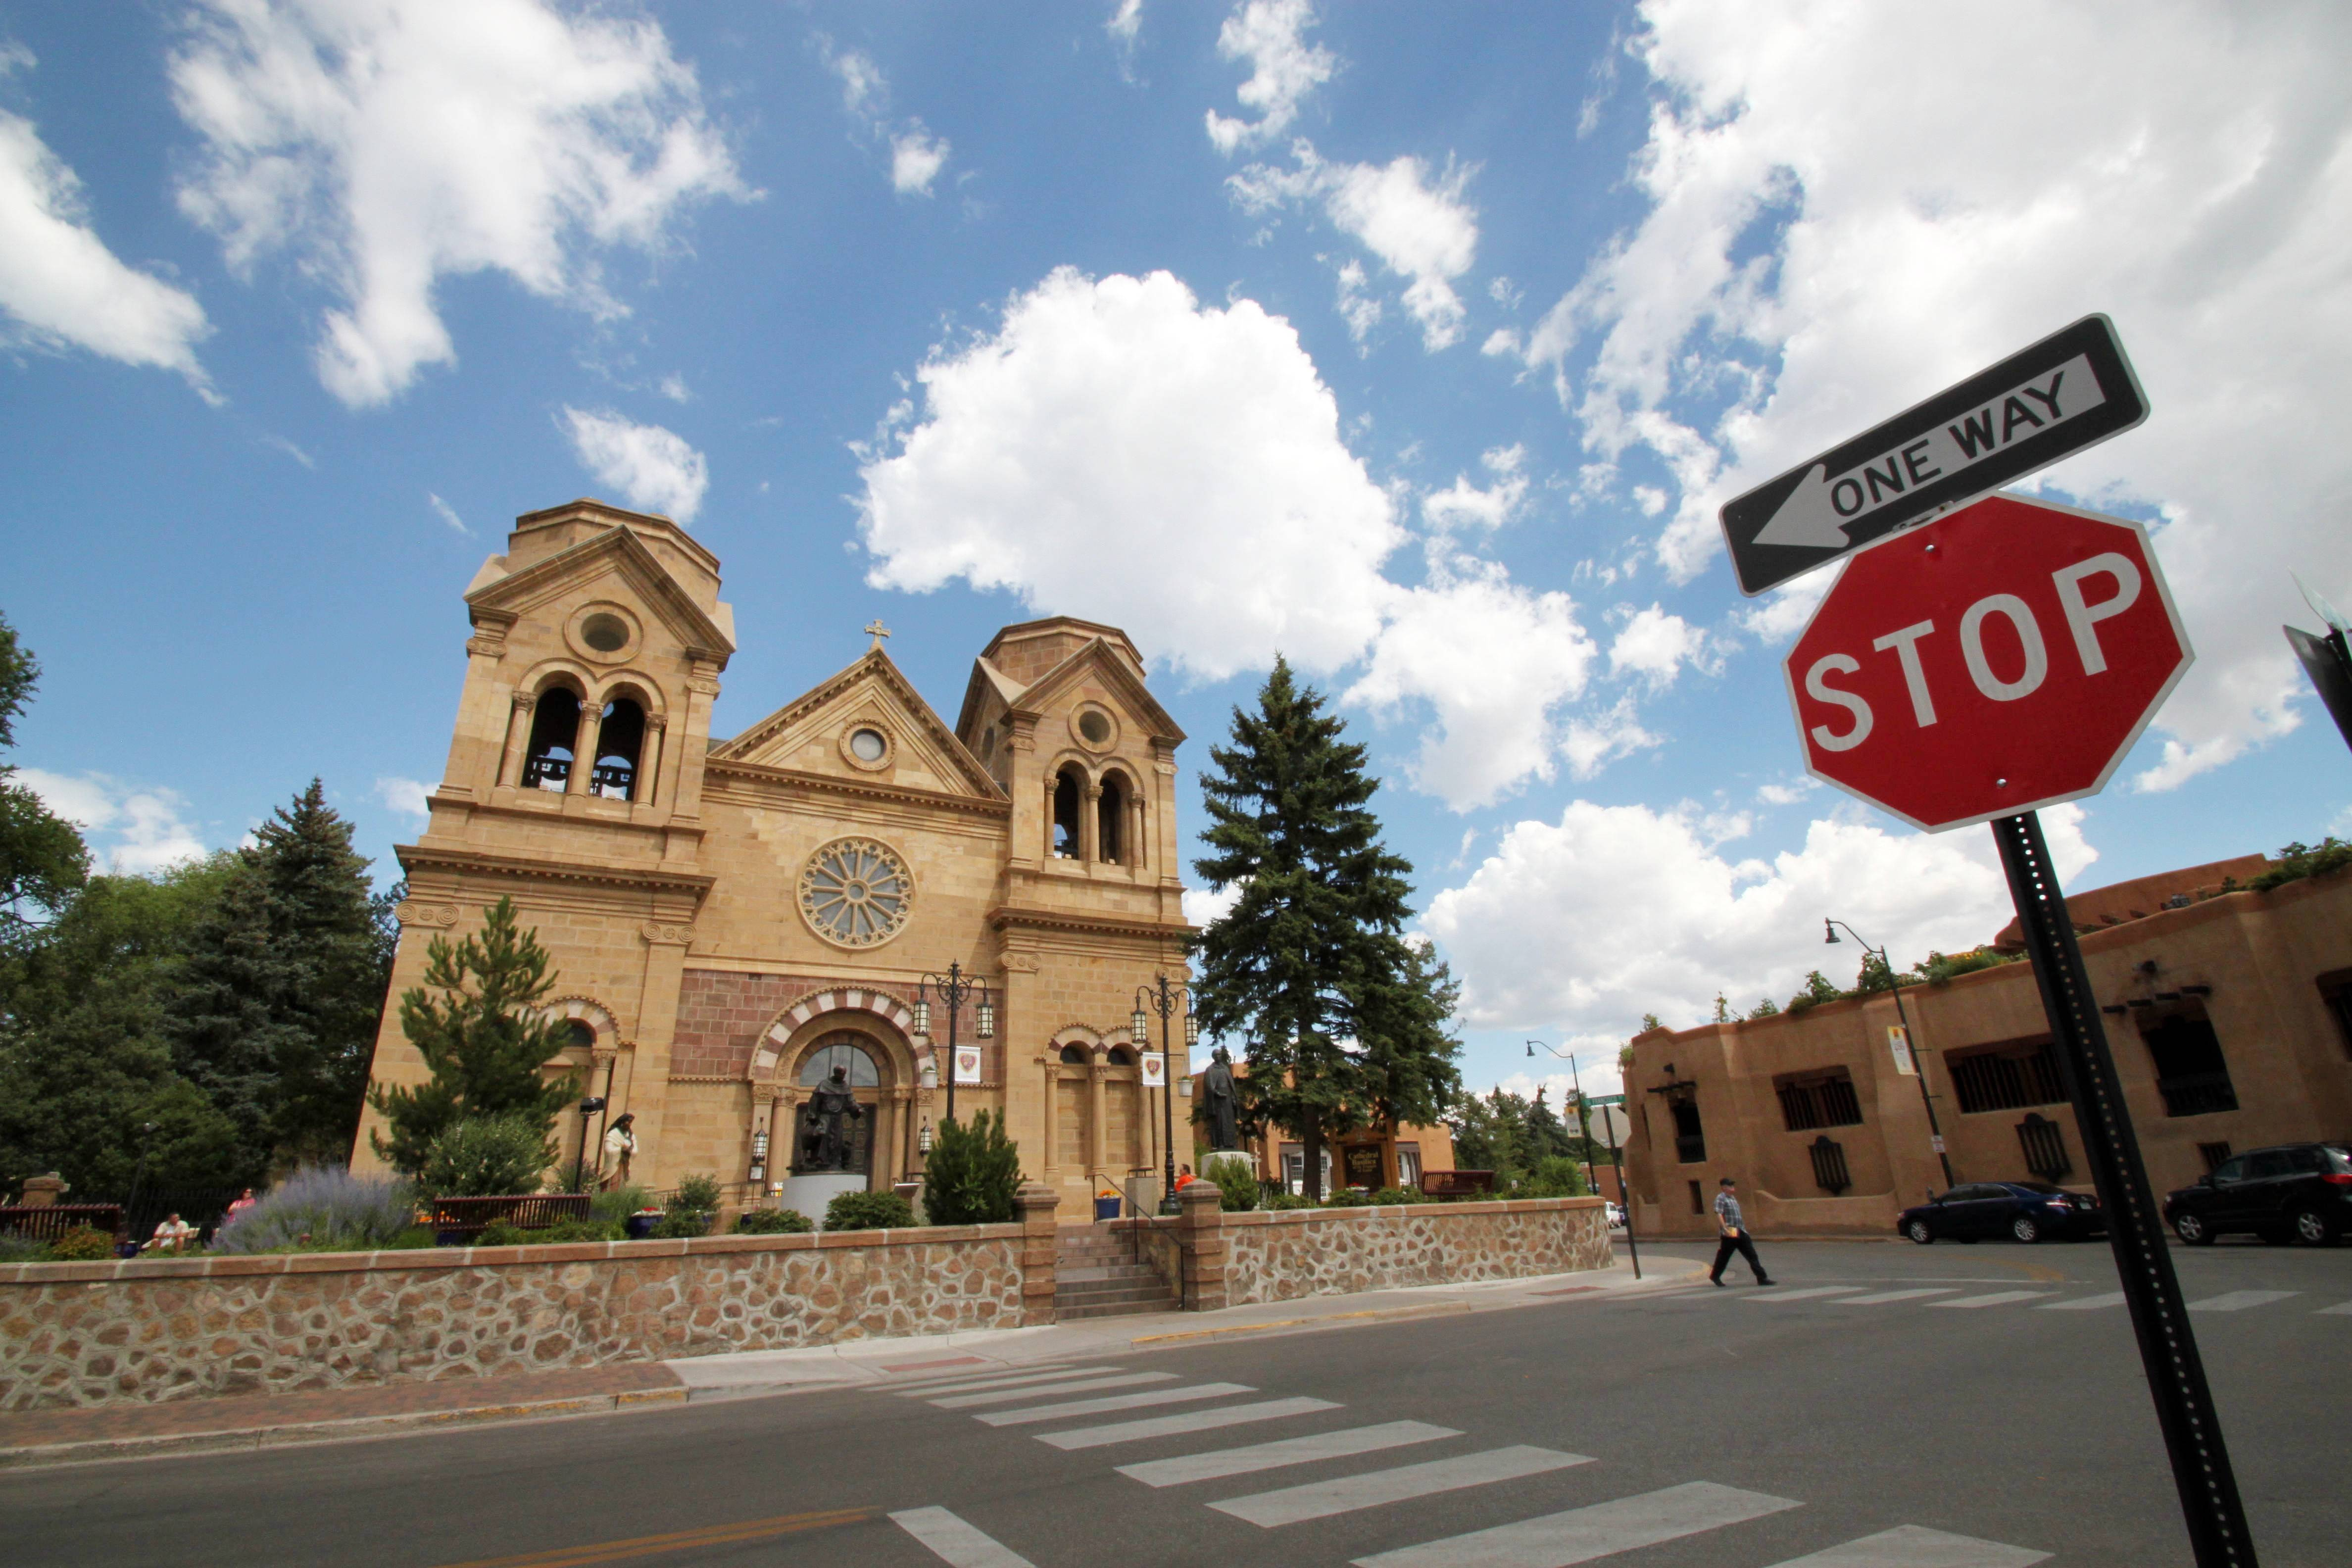 St. Francis Cathedral is one of many historic churches and missions in Santa Fe, N.M. Aside from being one of the city's most photographed landmarks, Pope Benedict XVI in 2005 declared the cathedral the Southwest's cradle of Catholicism.